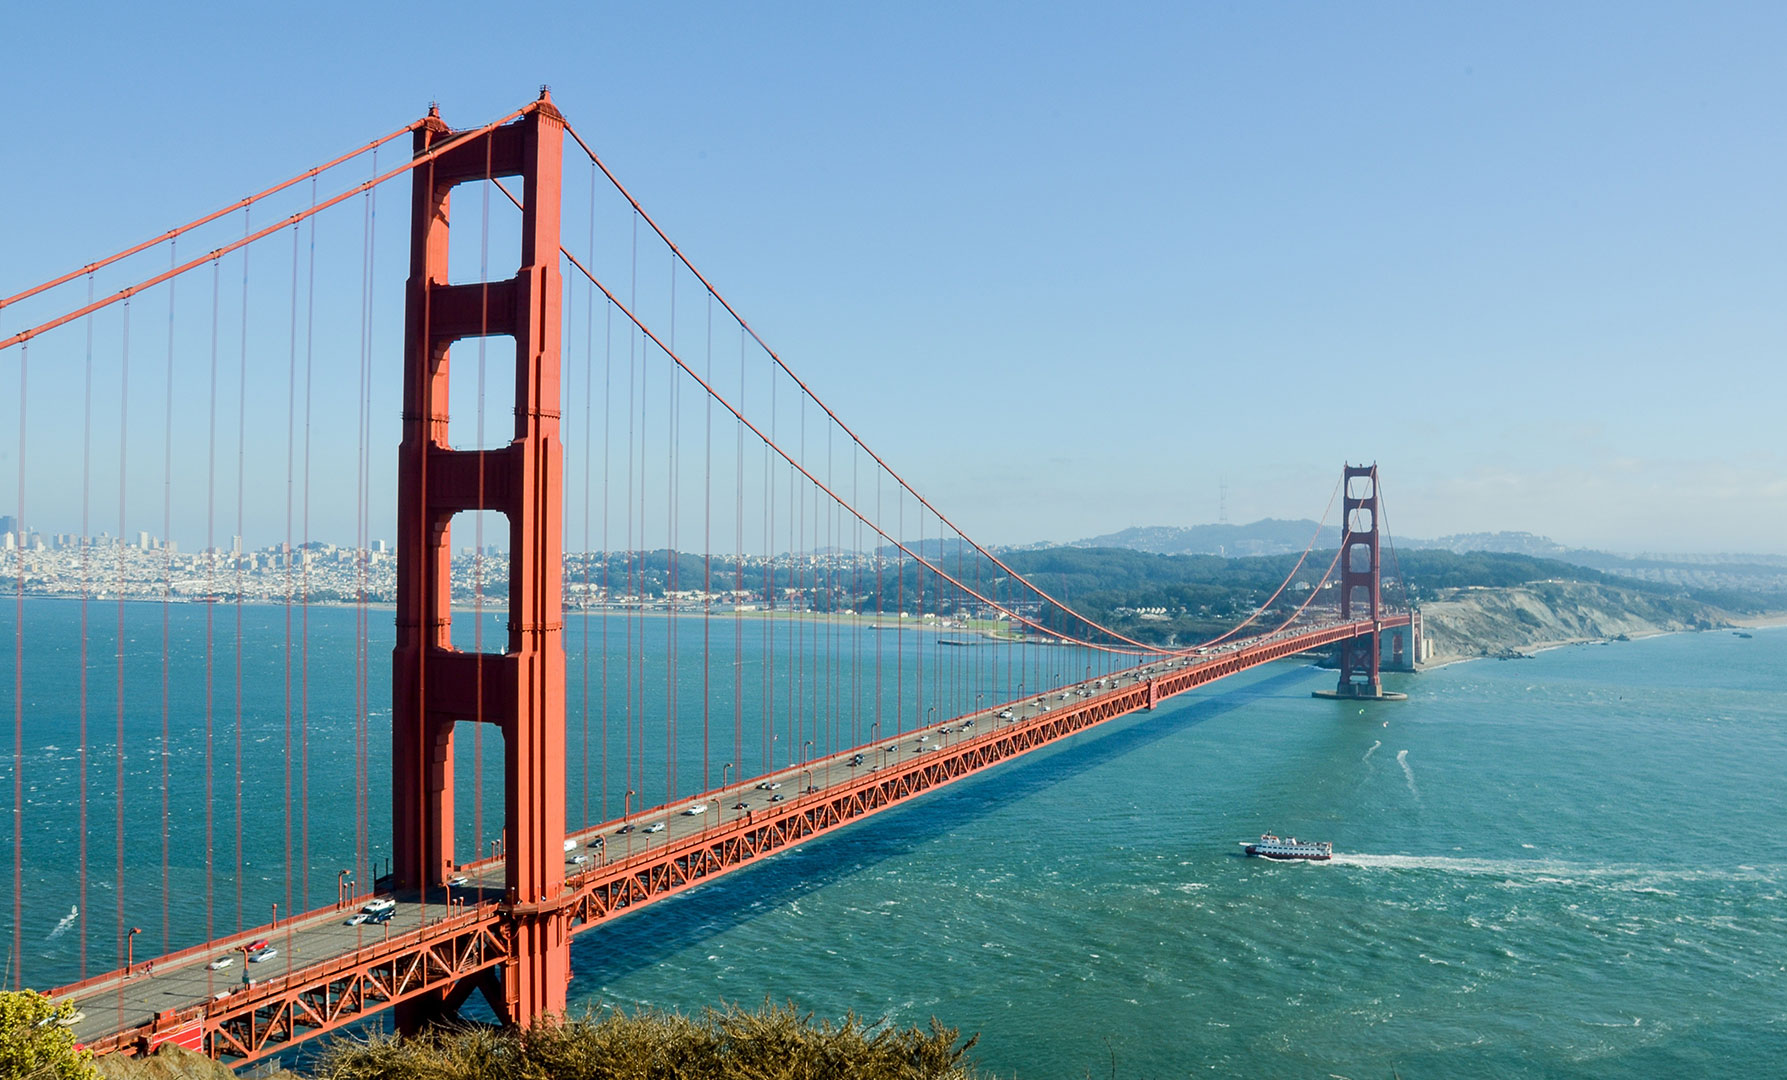 Explore the Bay Area: Spring Break Staycation